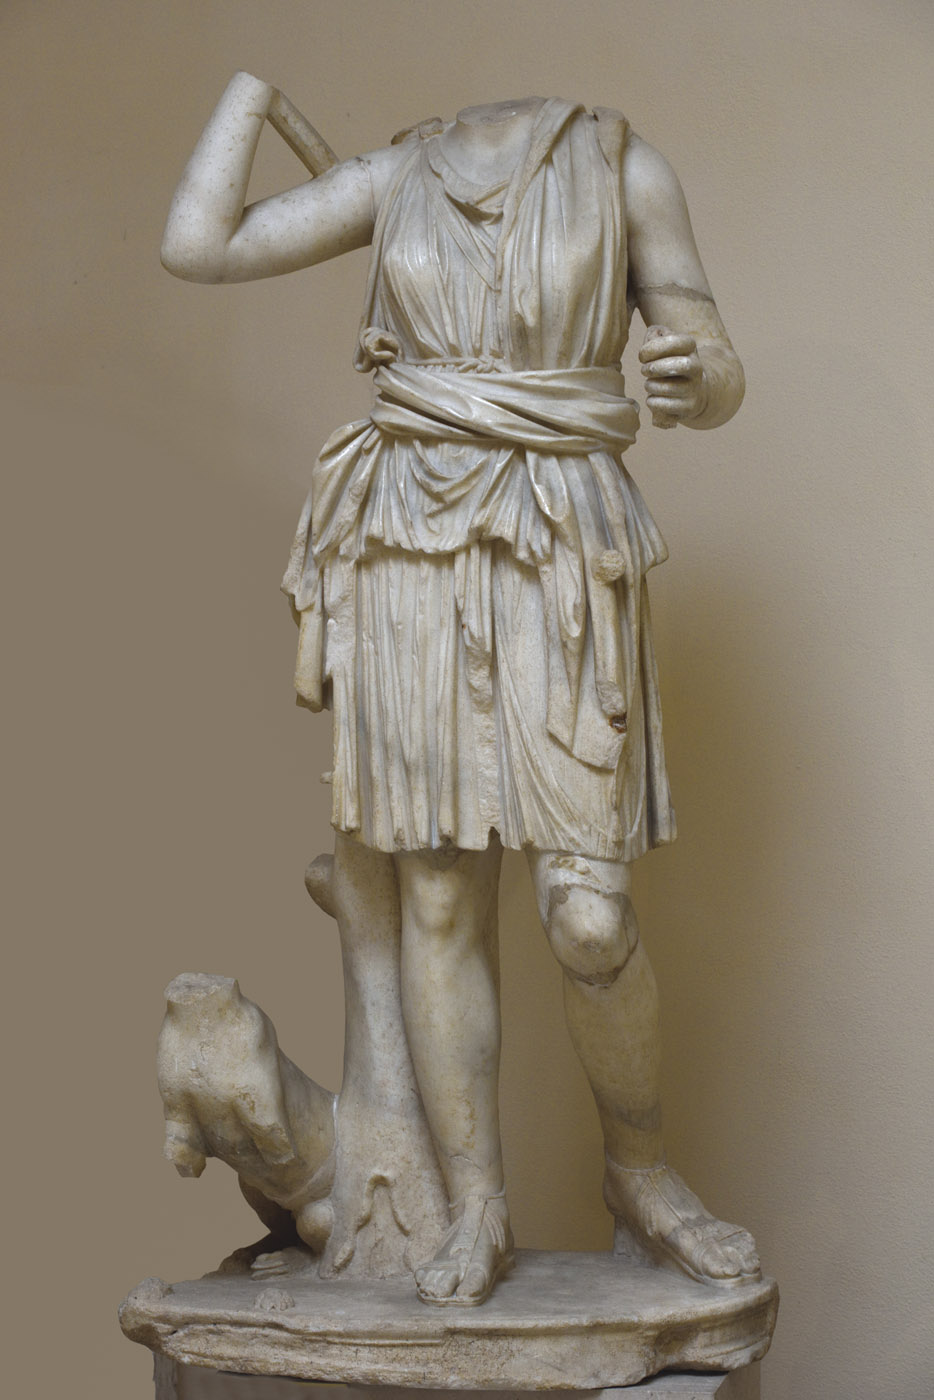 Statue of Artemis. Parian marble. 2nd century CE. Inv. No. 4. Ostia, Archaeological Museum